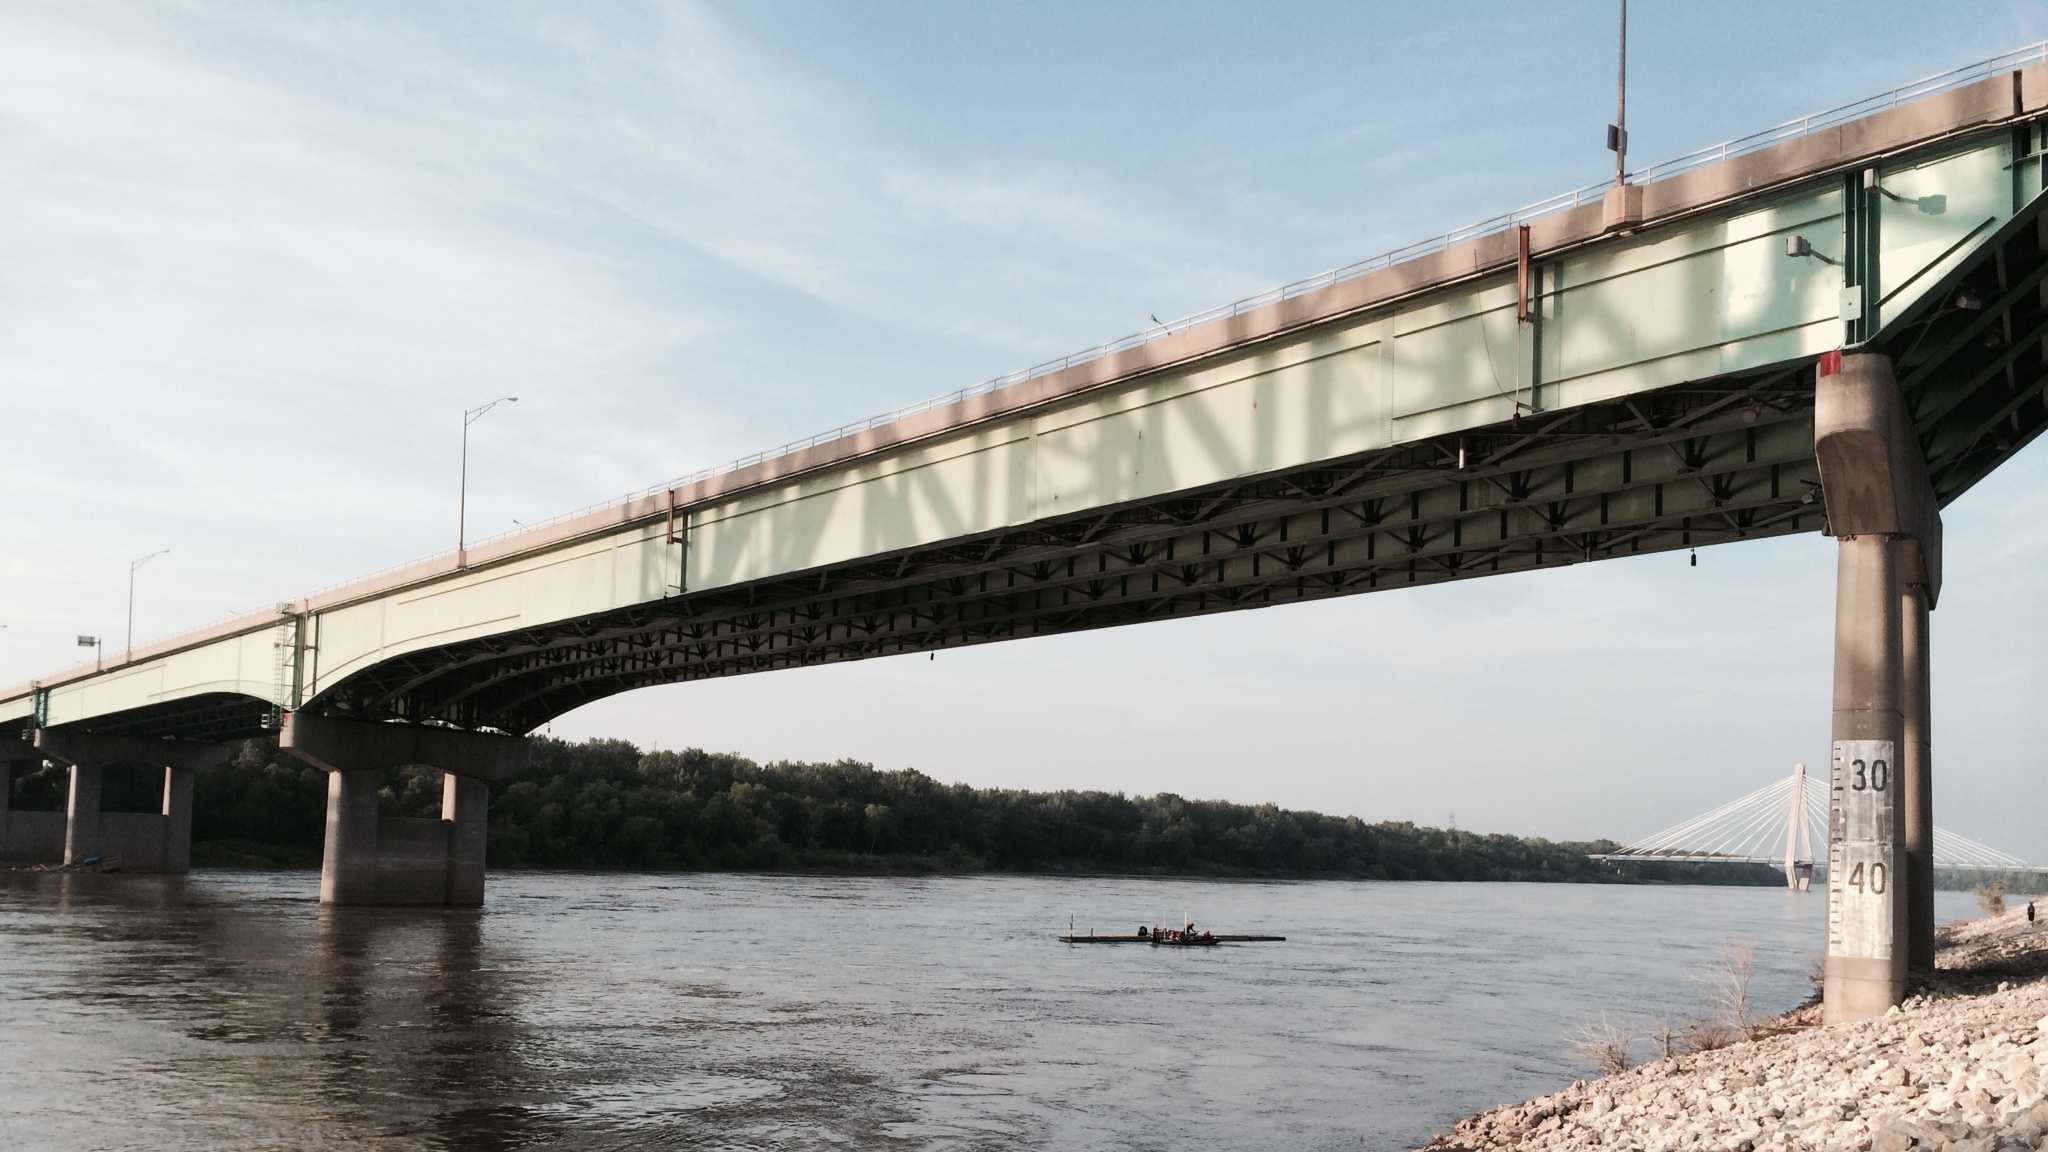 Police closed several bridges over the Missouri River due to a runaway dock that they fear could hit a bridge pillar.